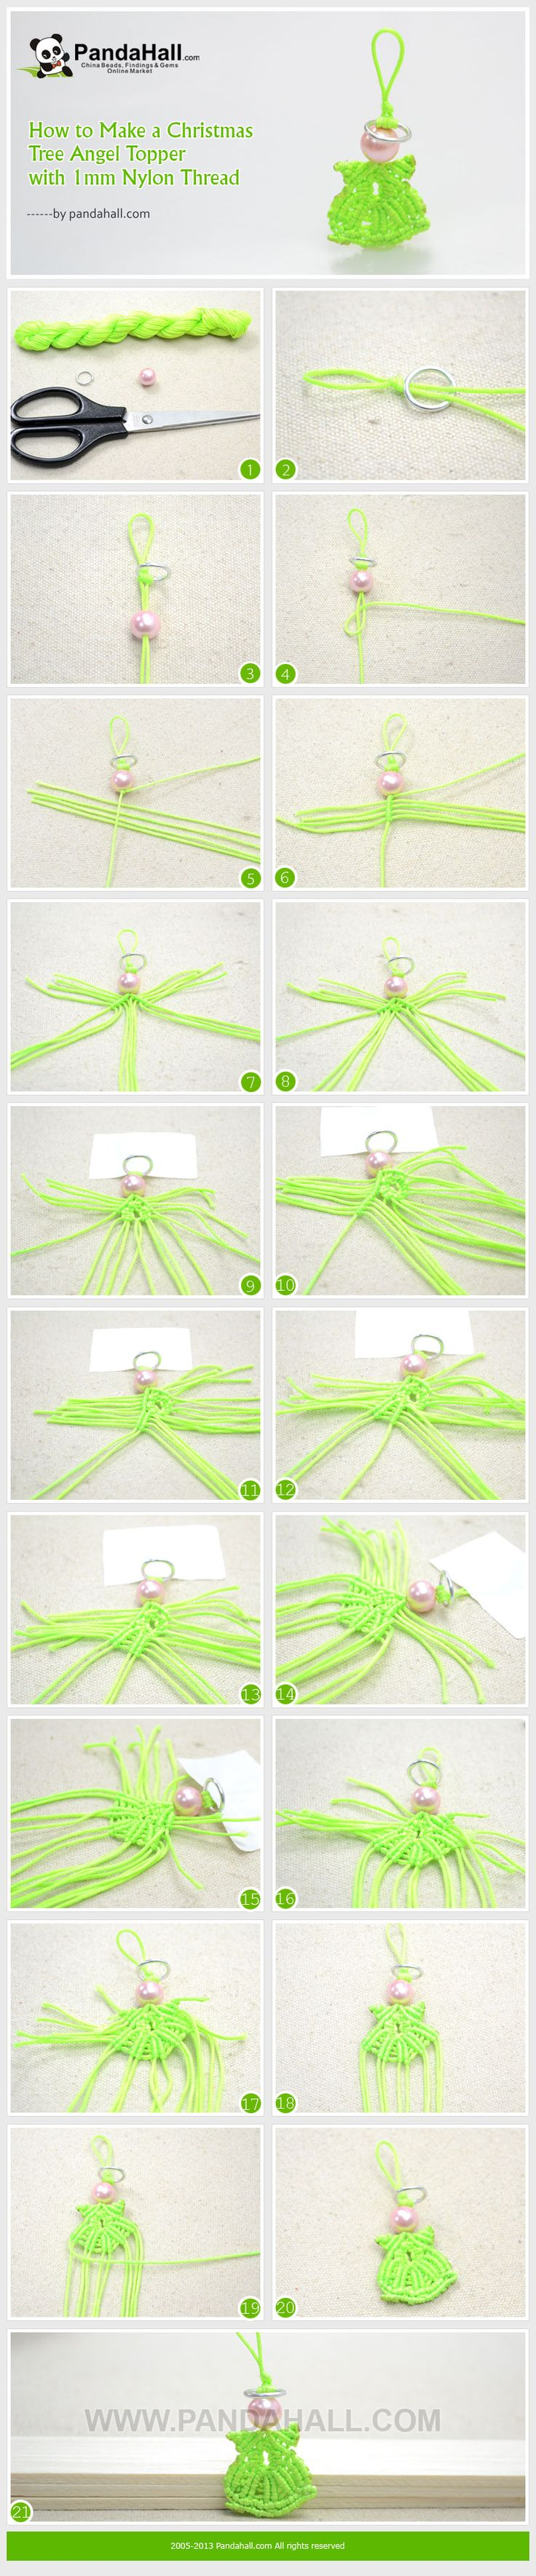 171 best christmas images on Pinterest | Christmas crafts ...